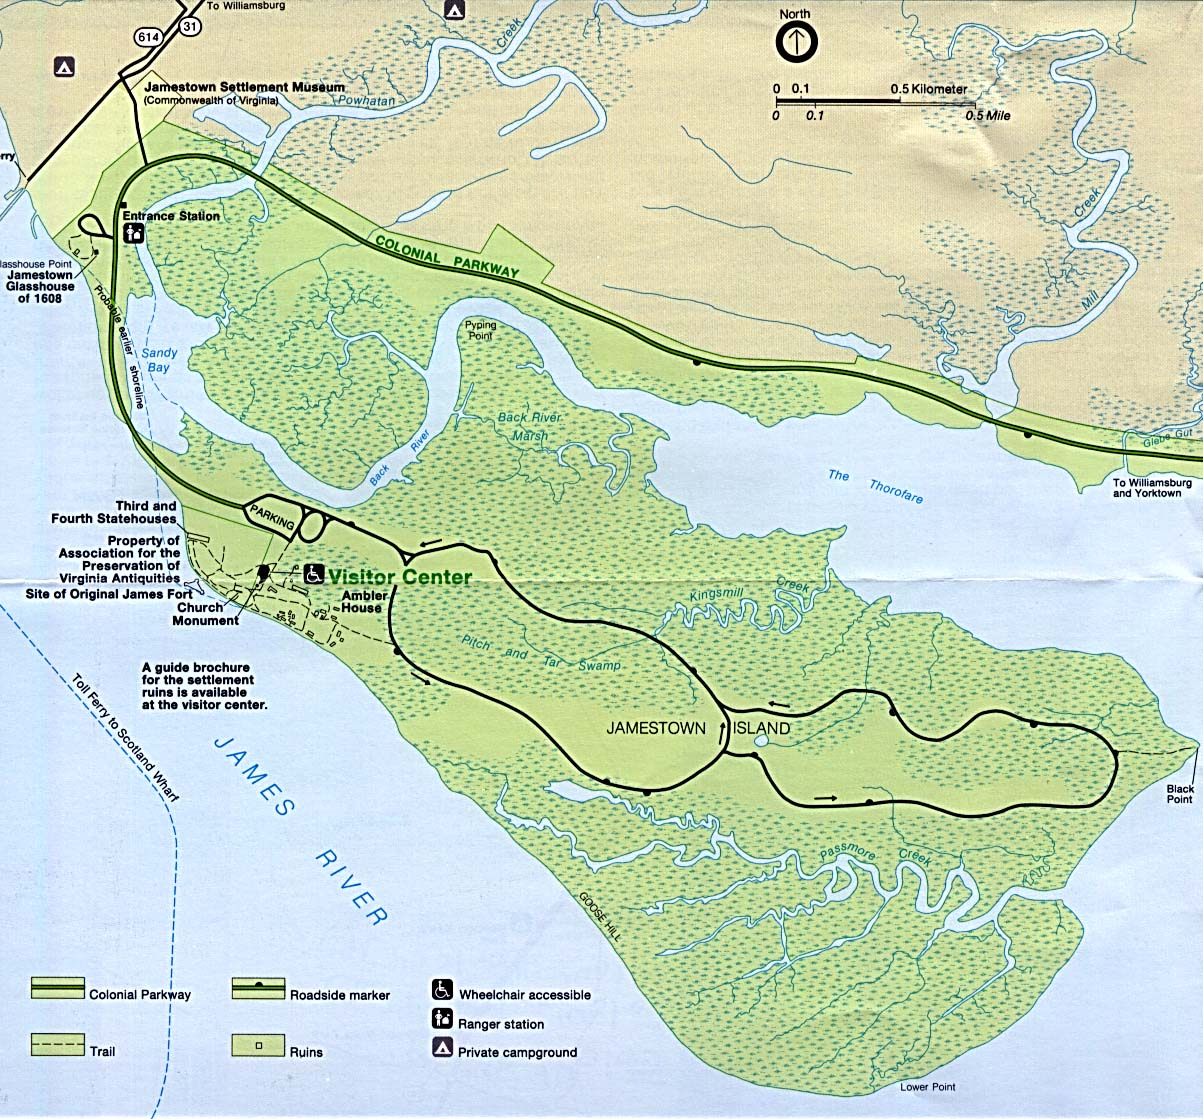 Maps of National Historic & Military Parks, Memorials, and Battlefields